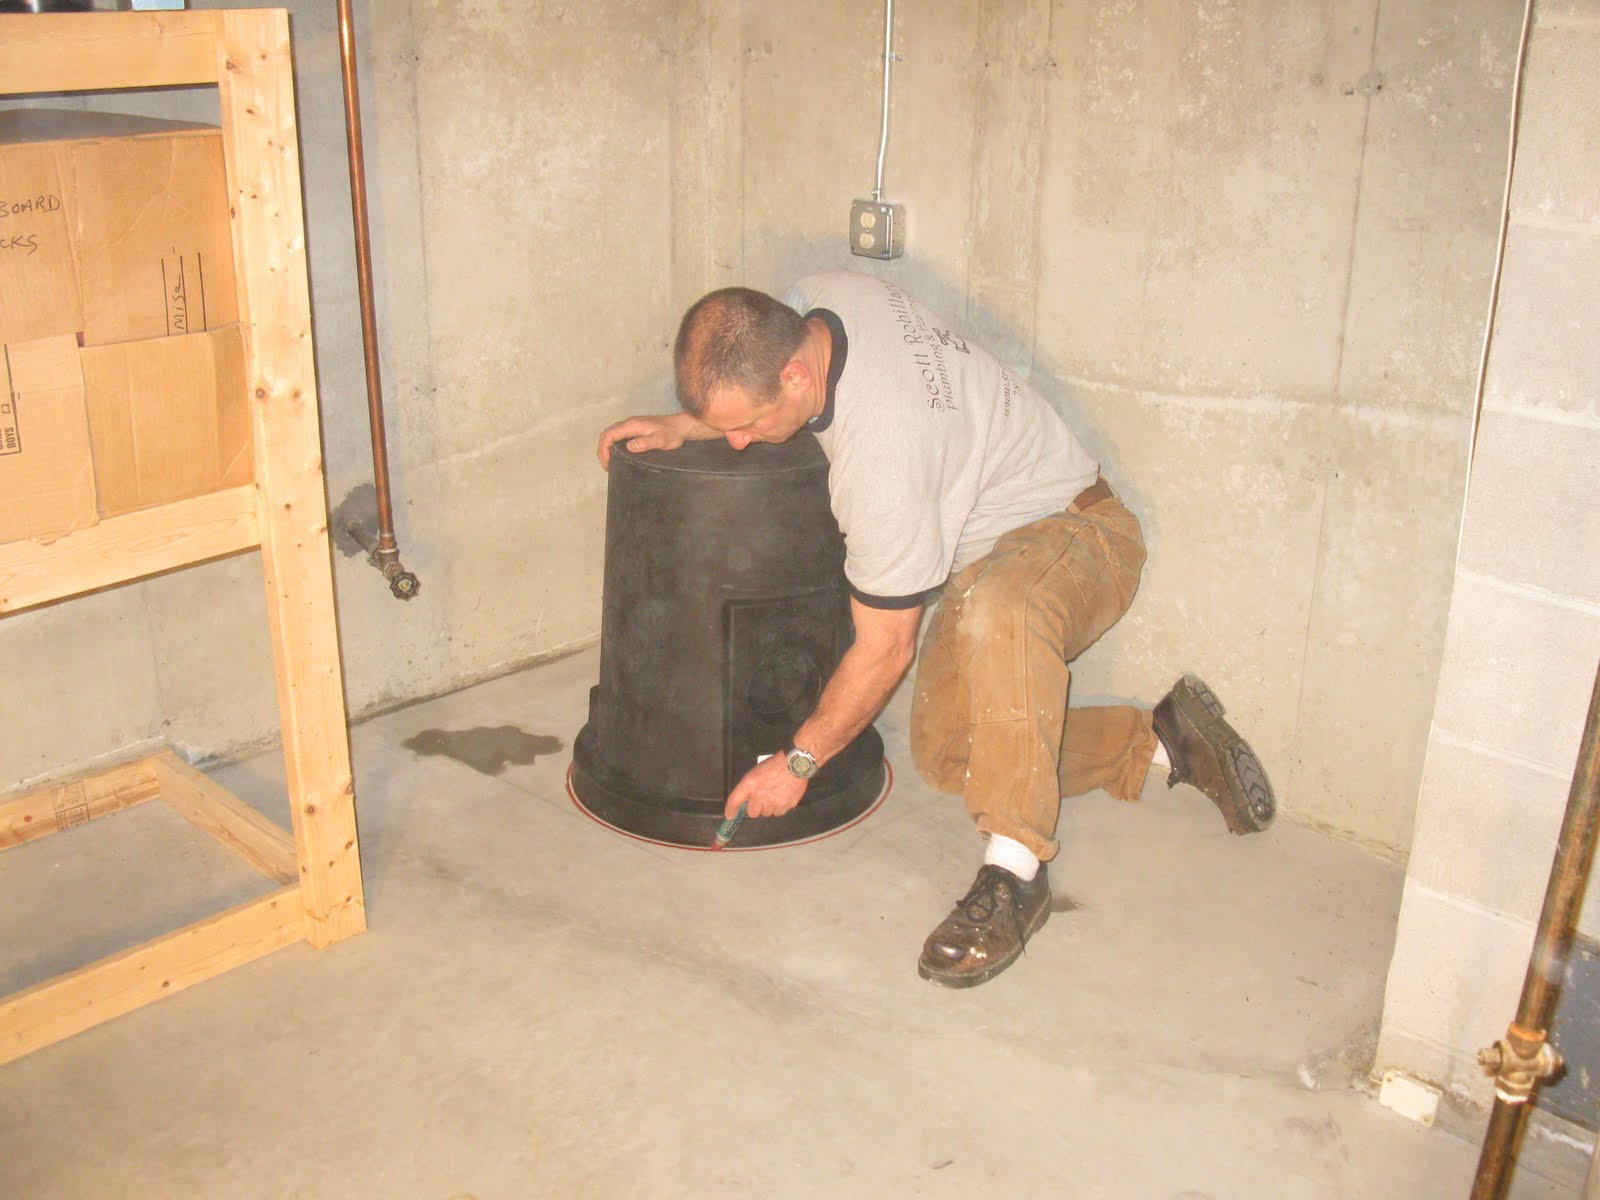 How To Install A Sump Pump?